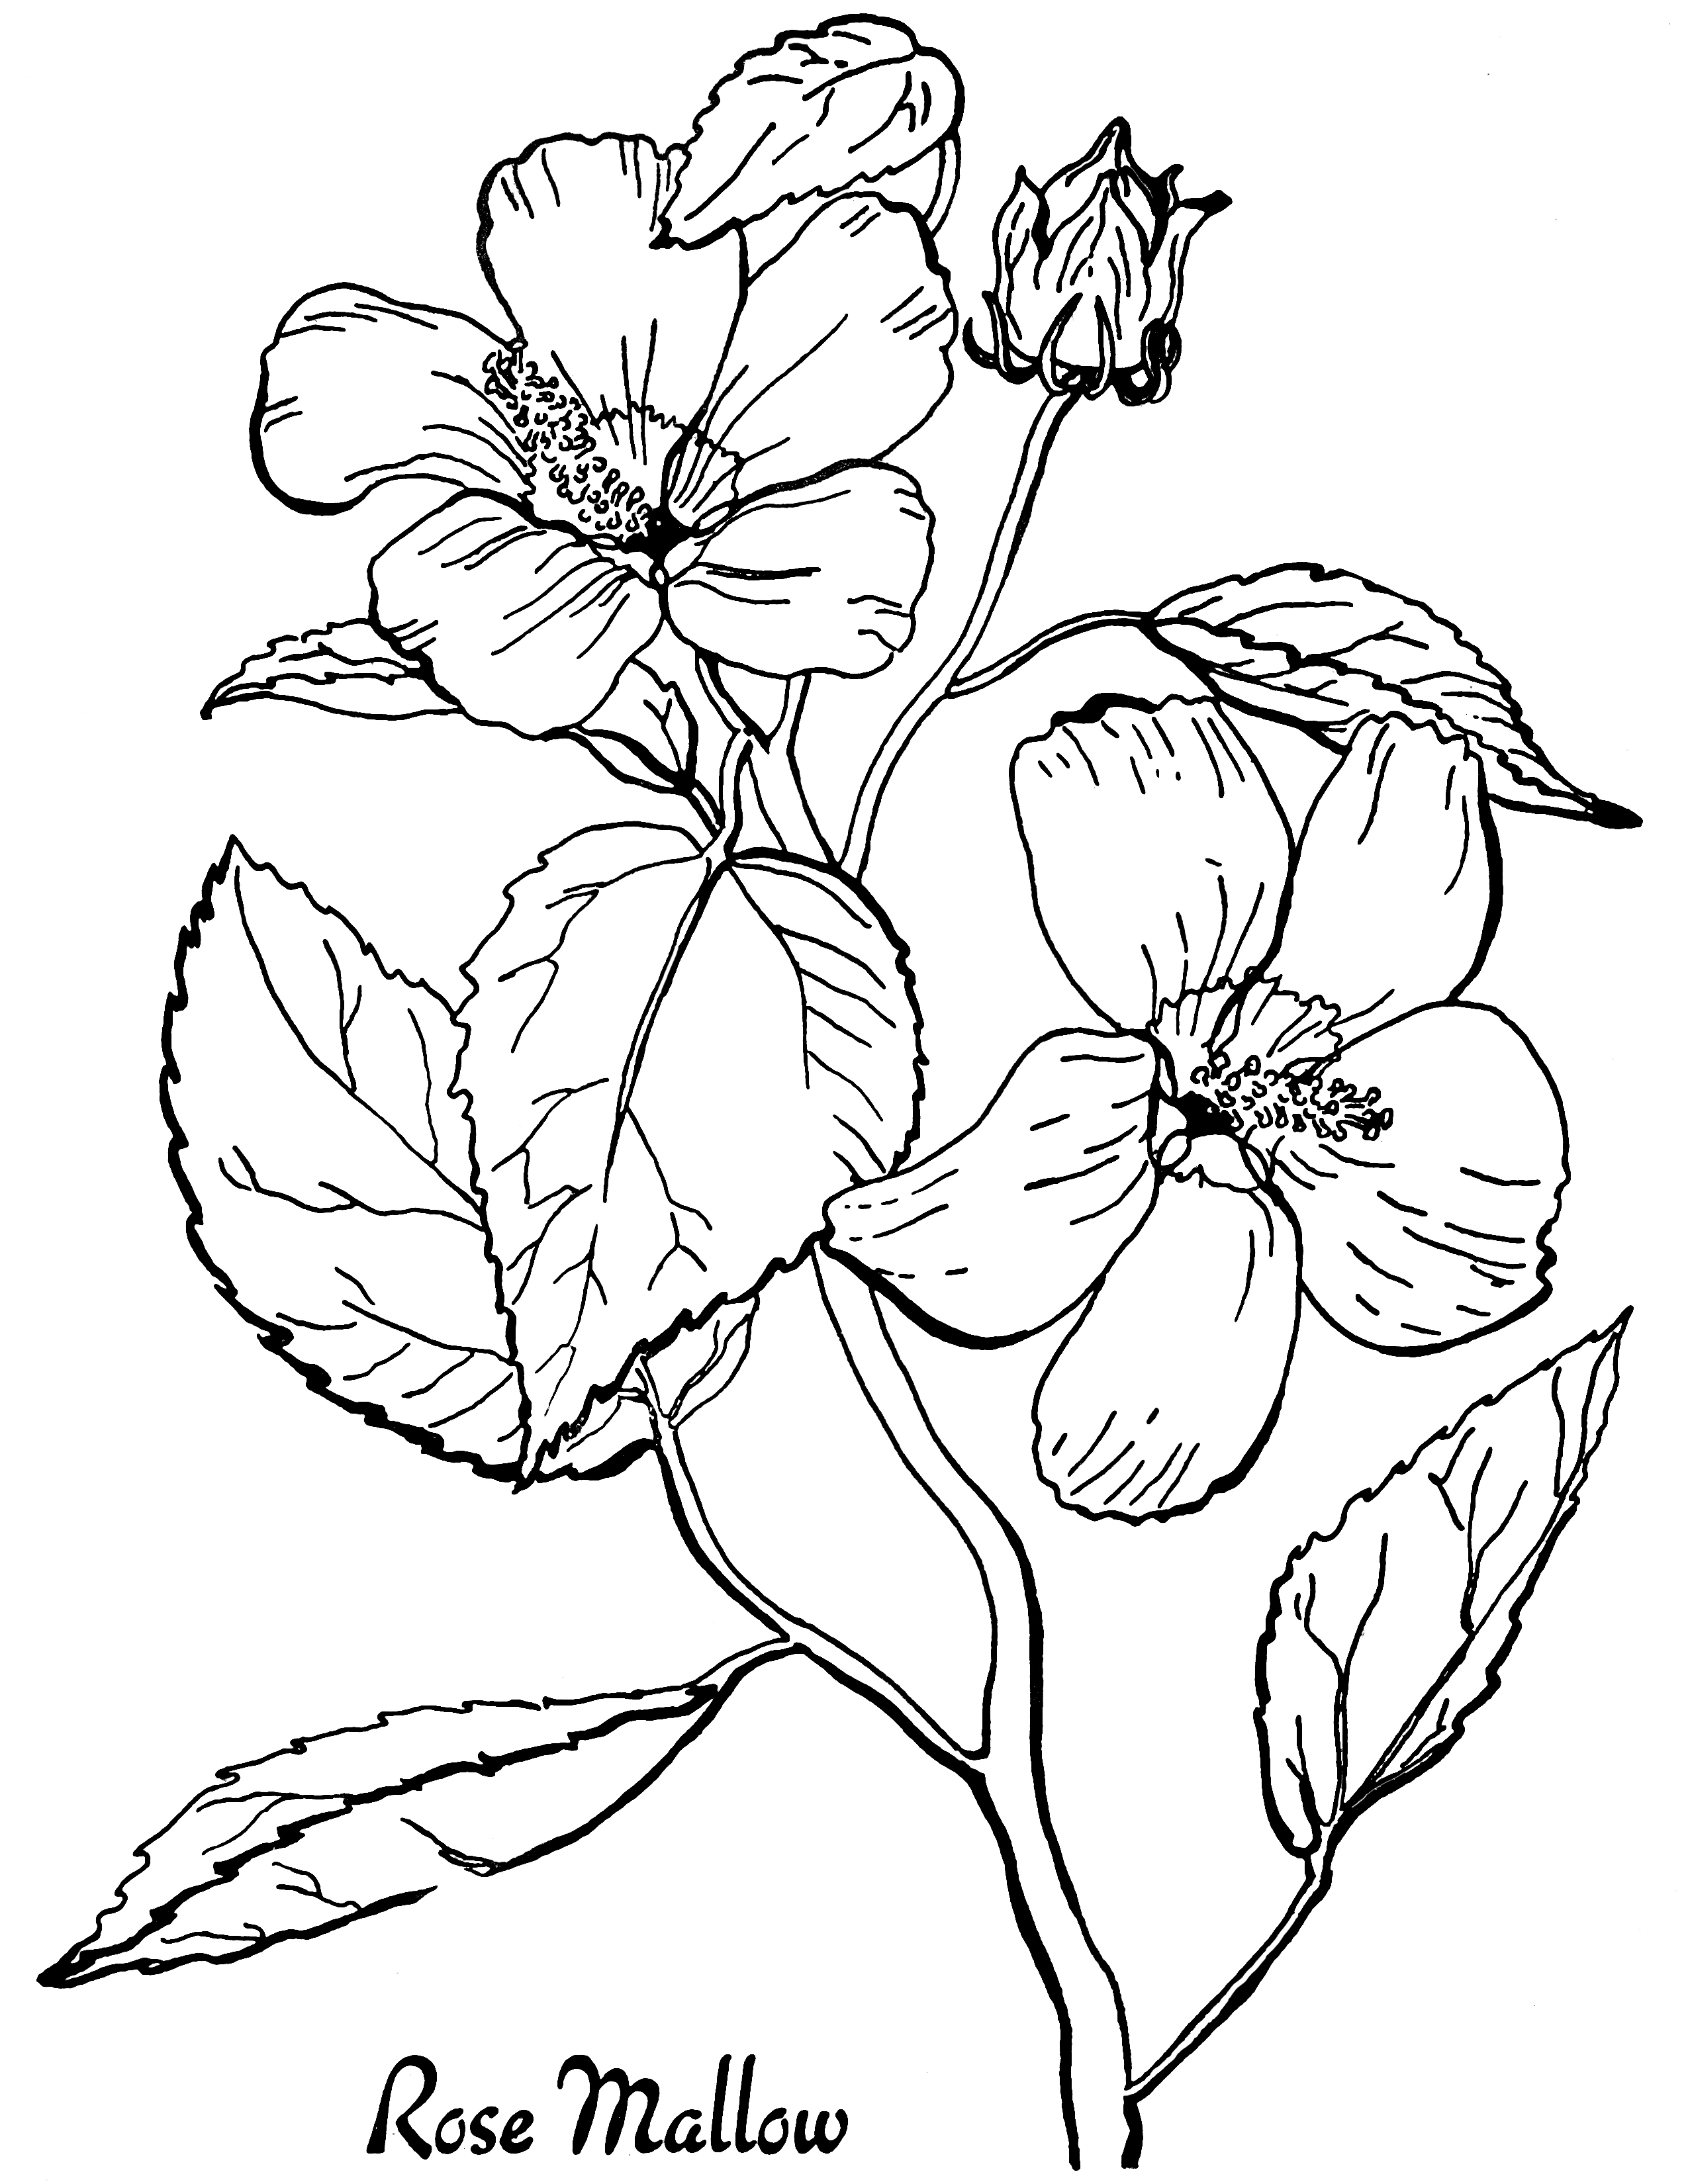 coloring pages for adults printable 4 free coloring pages for adults pages coloring printable for adults